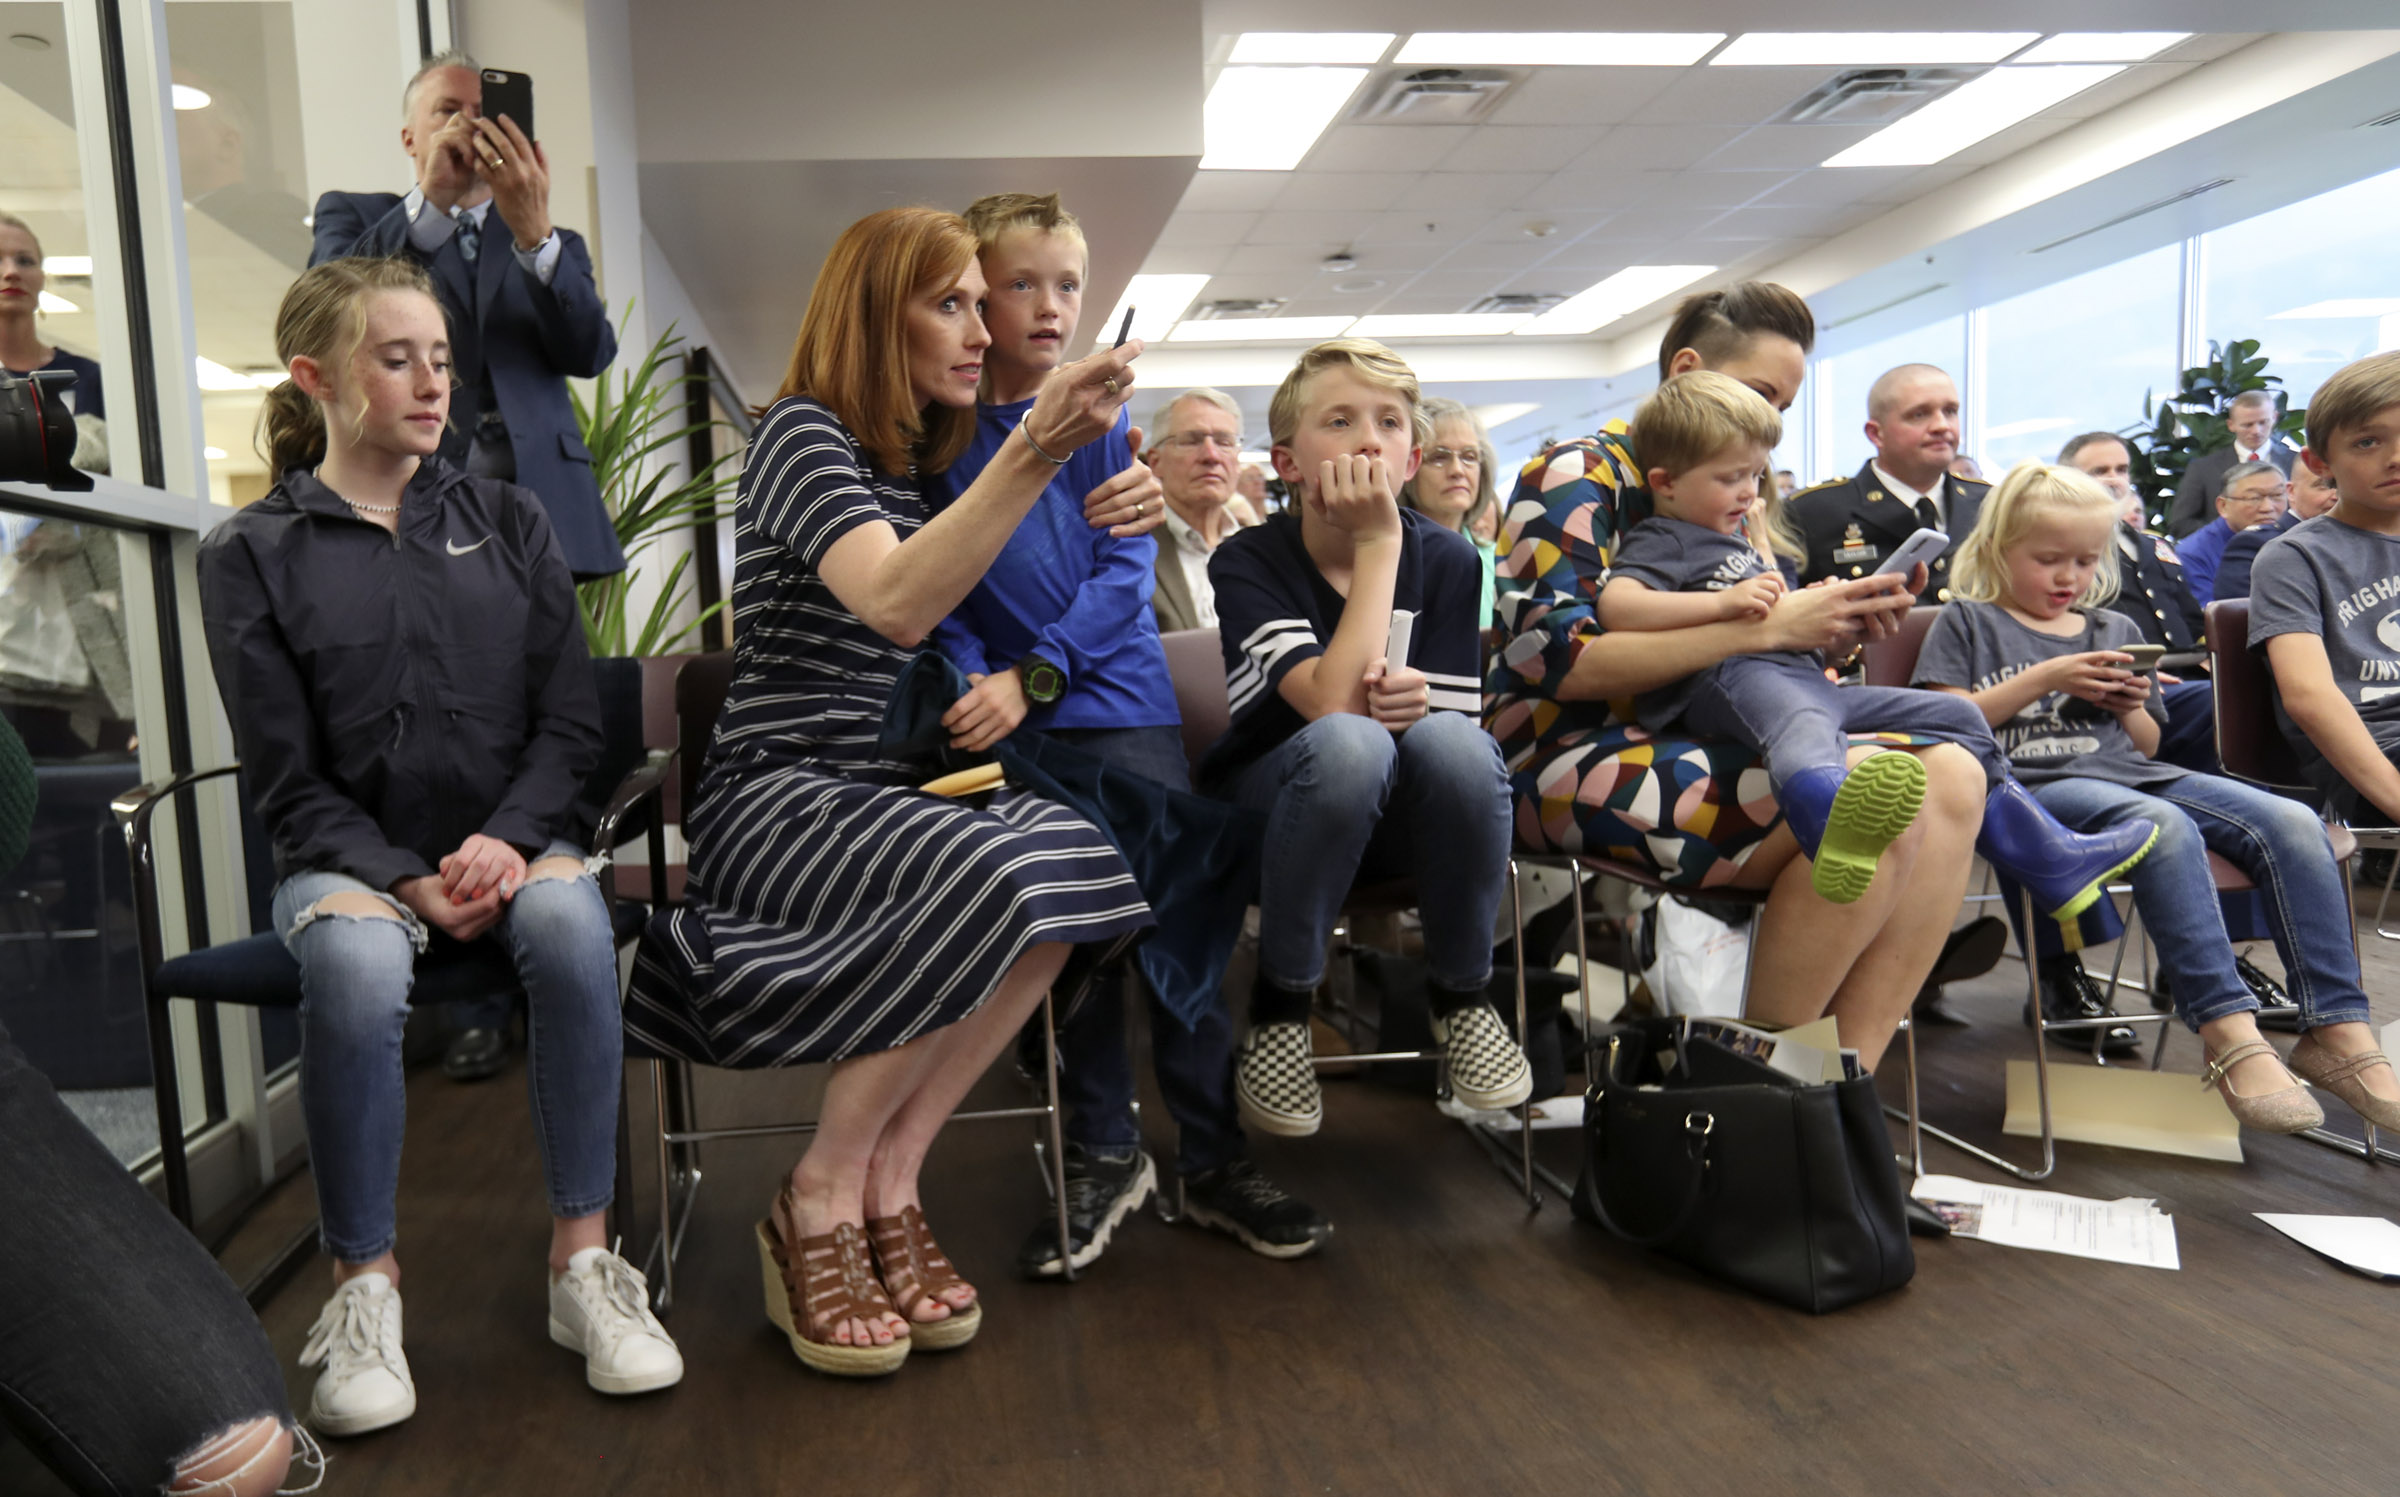 Jennie Taylor sits with her children during a ceremony where the name of her husband, Maj. Brent Taylor, was added to the Reflection Room Memorial Wall in the Wilkinson Center on the BYU campus in Provo on Thursday, May 23, 2019. Taylor was killed in Afghanistan in 2018.